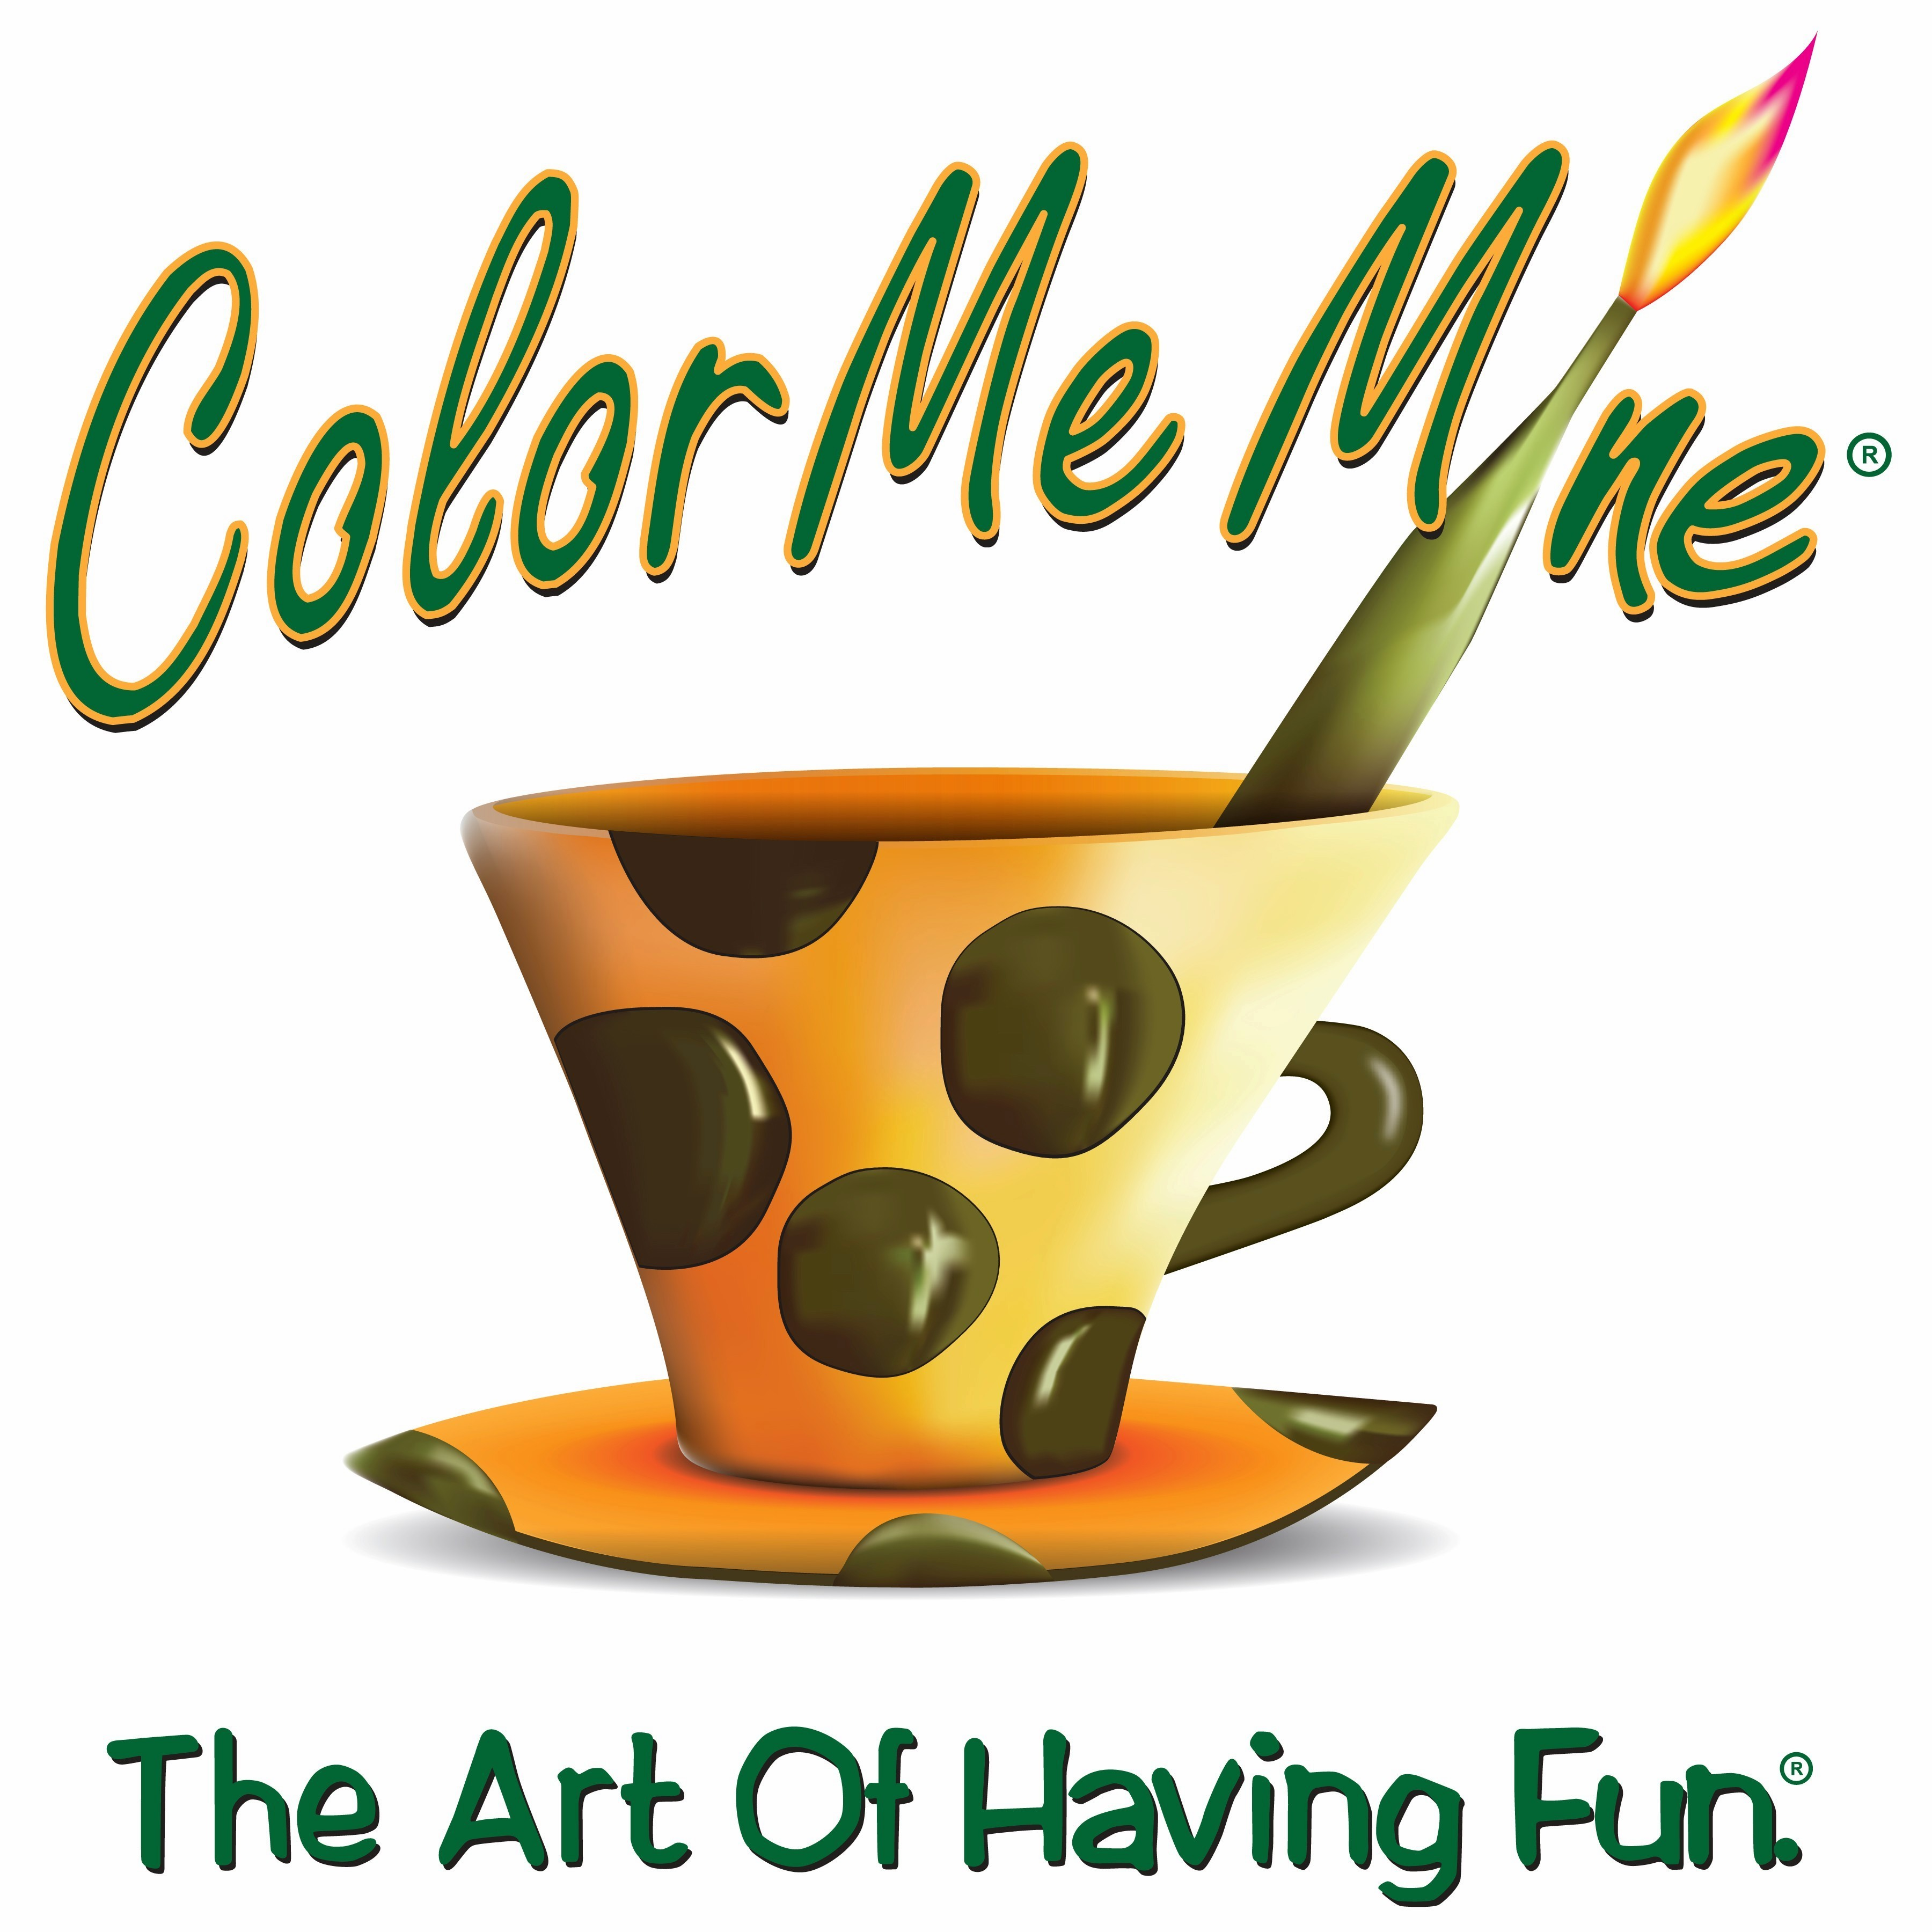 Color Me Mine Closed for Renovations Mar. 2.